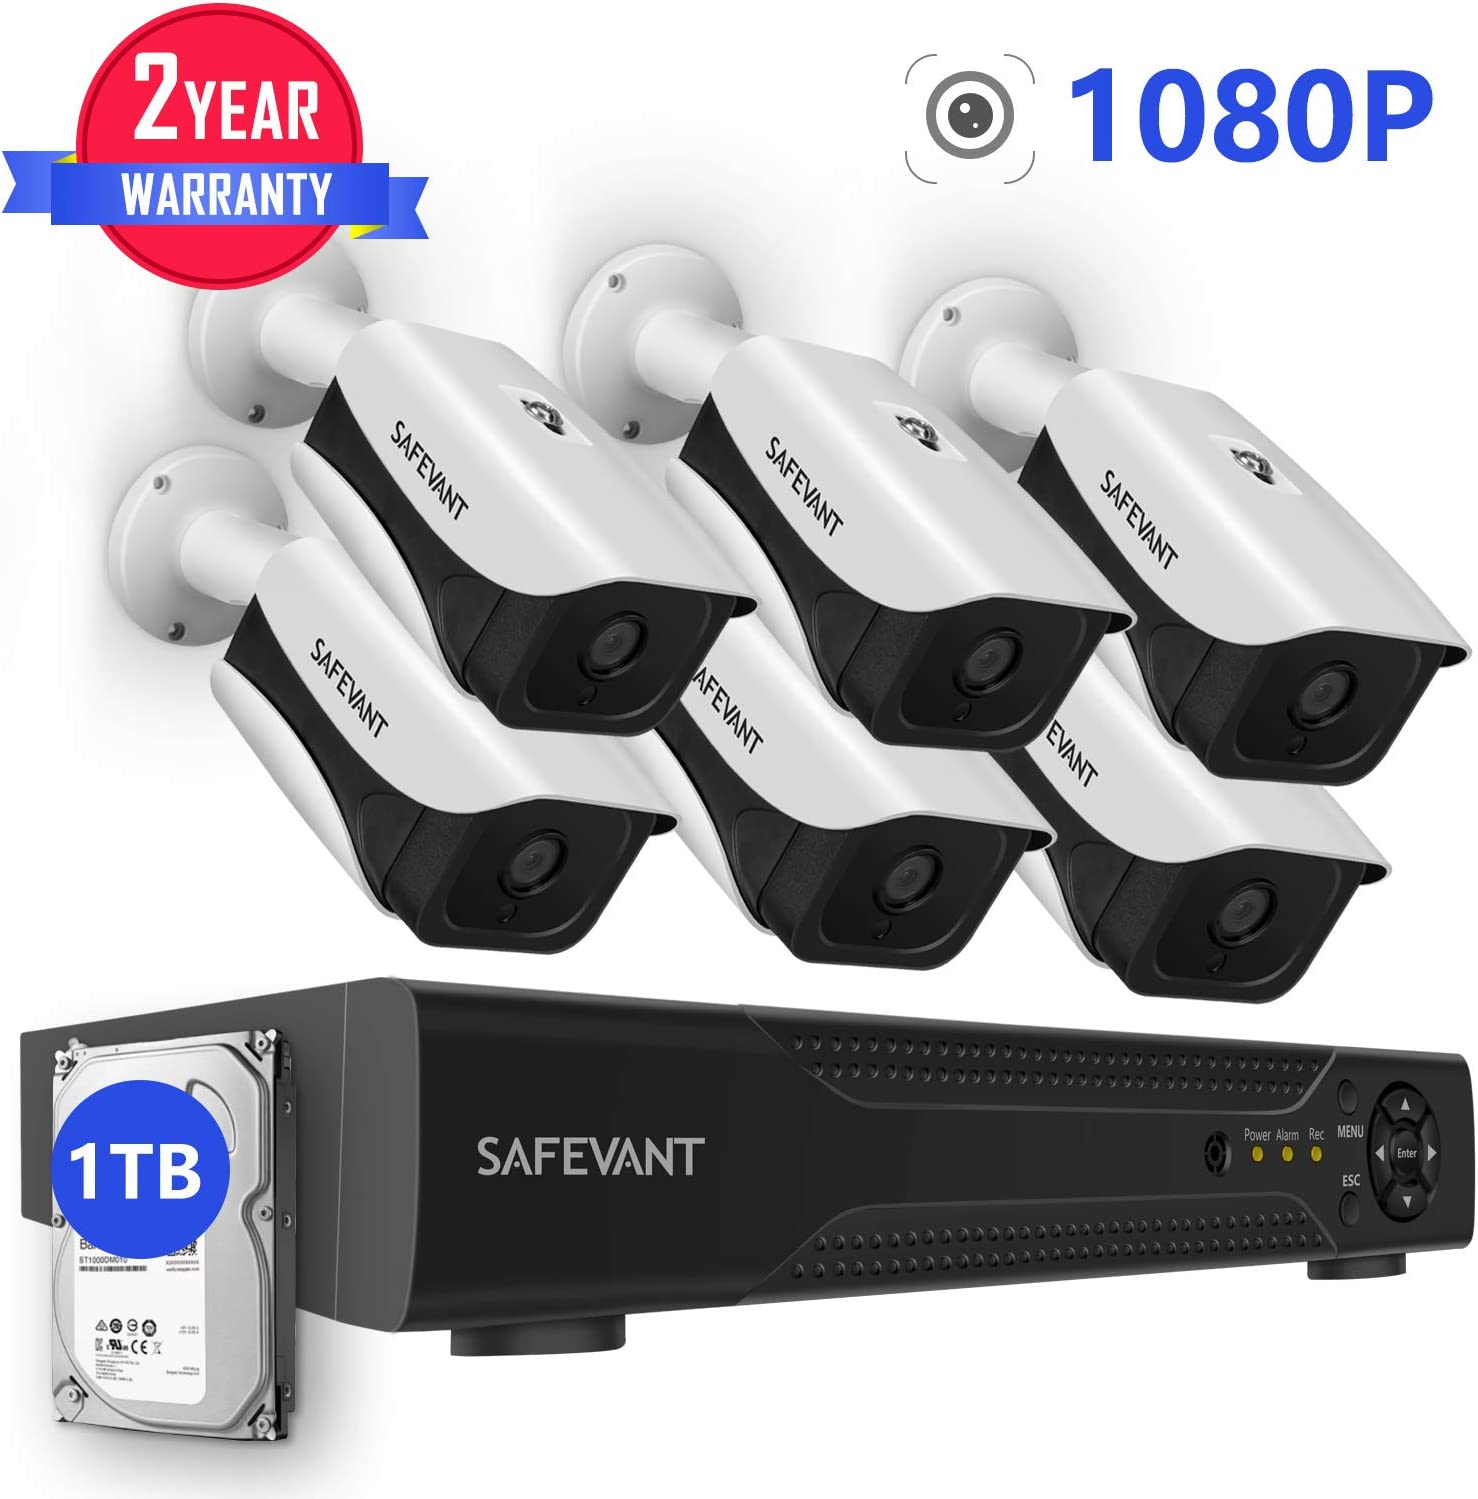 1080P Security Camera System with 1TB Hard Drive,SAFEVANT 8CH DVR Kits with 6PCS 2.0MP Outdoor Indoor CCTV Cameras with Night Vision